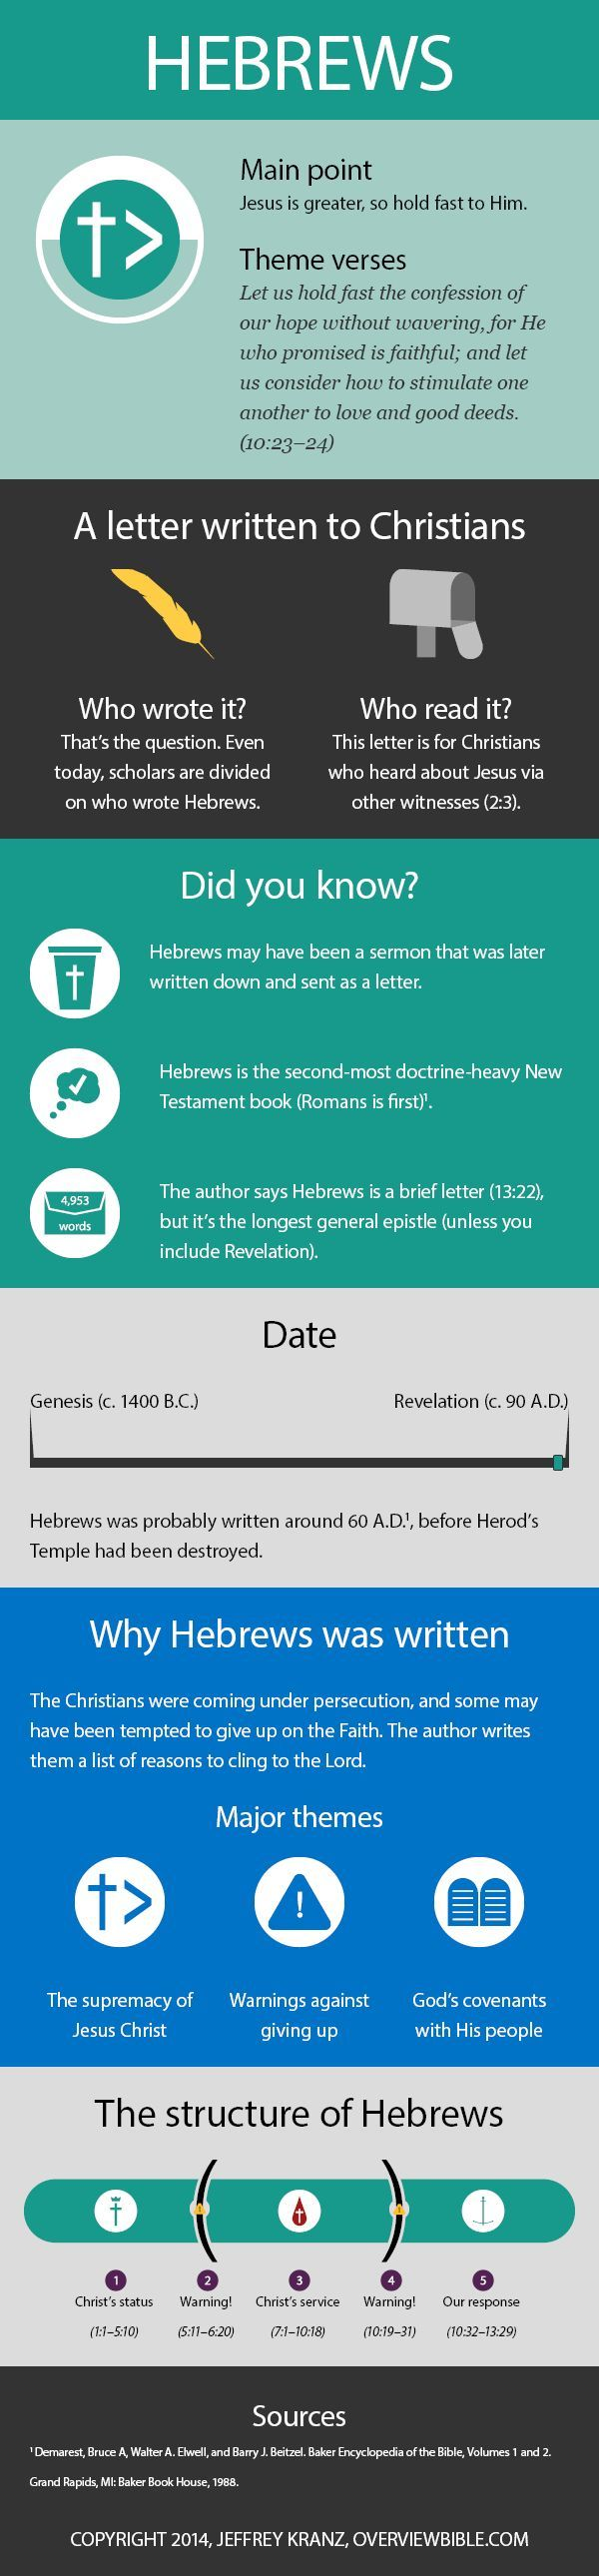 What you need to know about Hebrews - Summary of important Hebrew facts to start  your bible study on Hebrews,